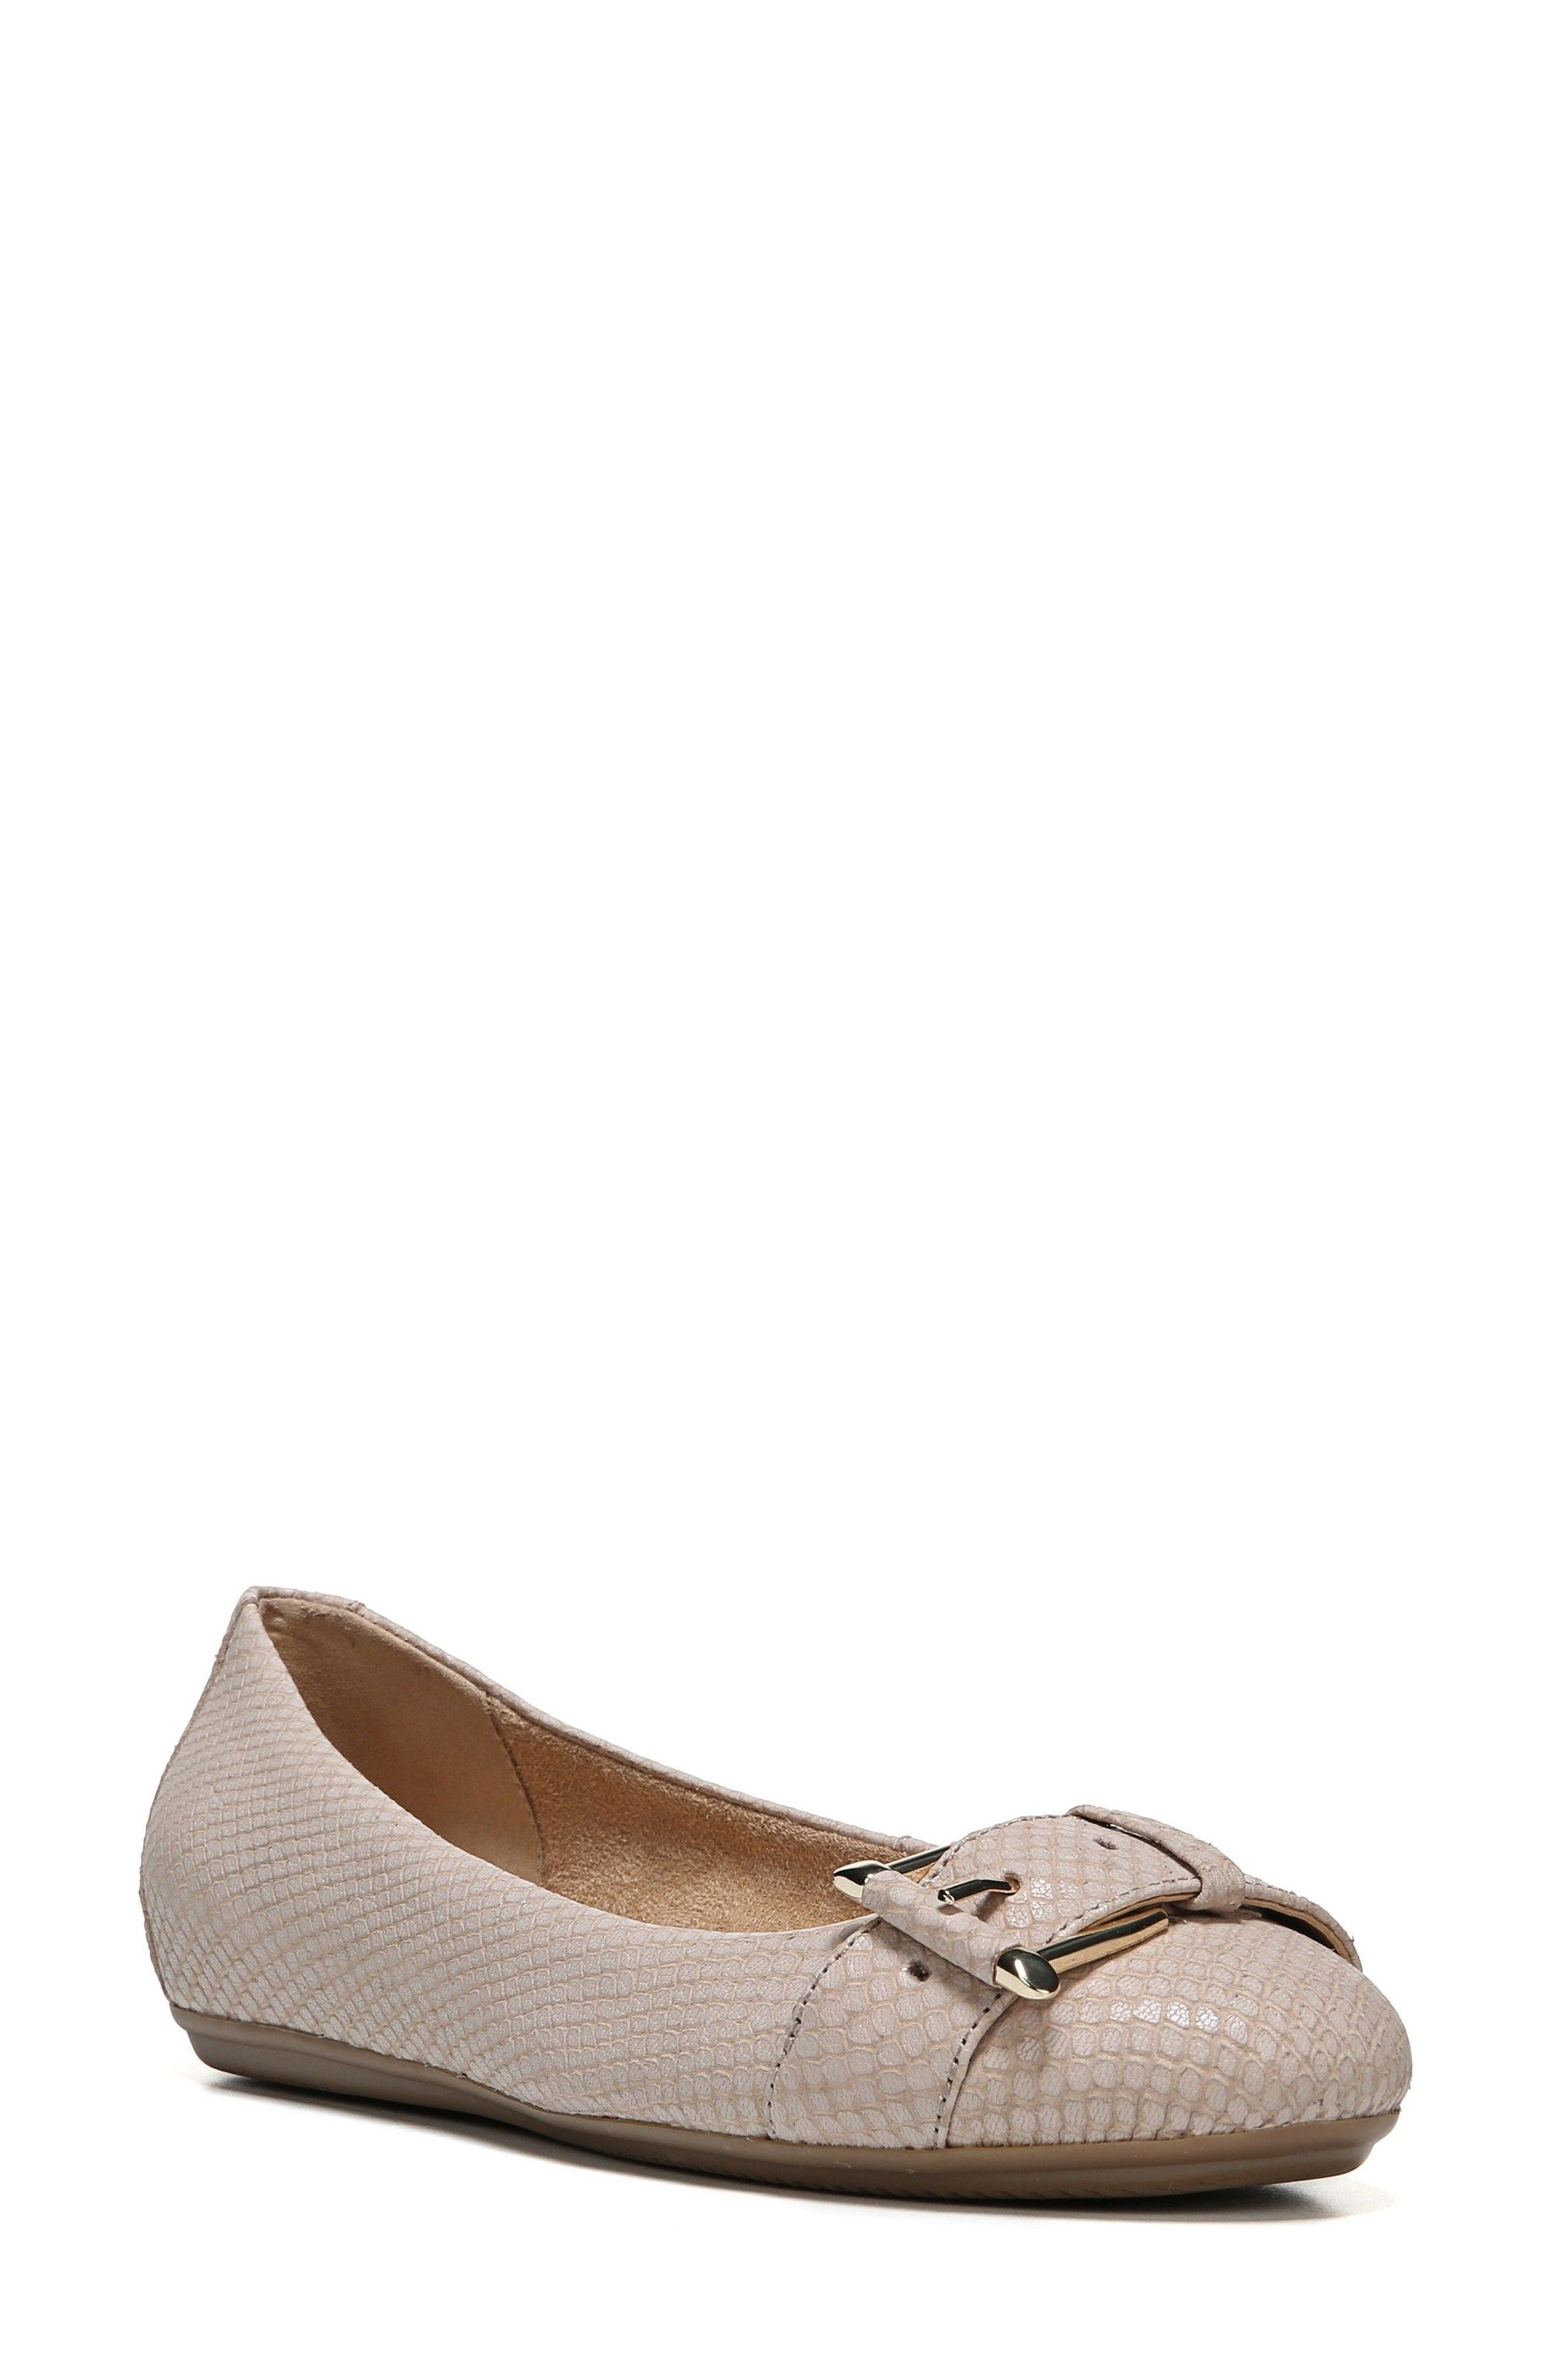 Naturalizer Bayberry Buckle Flat (Women)